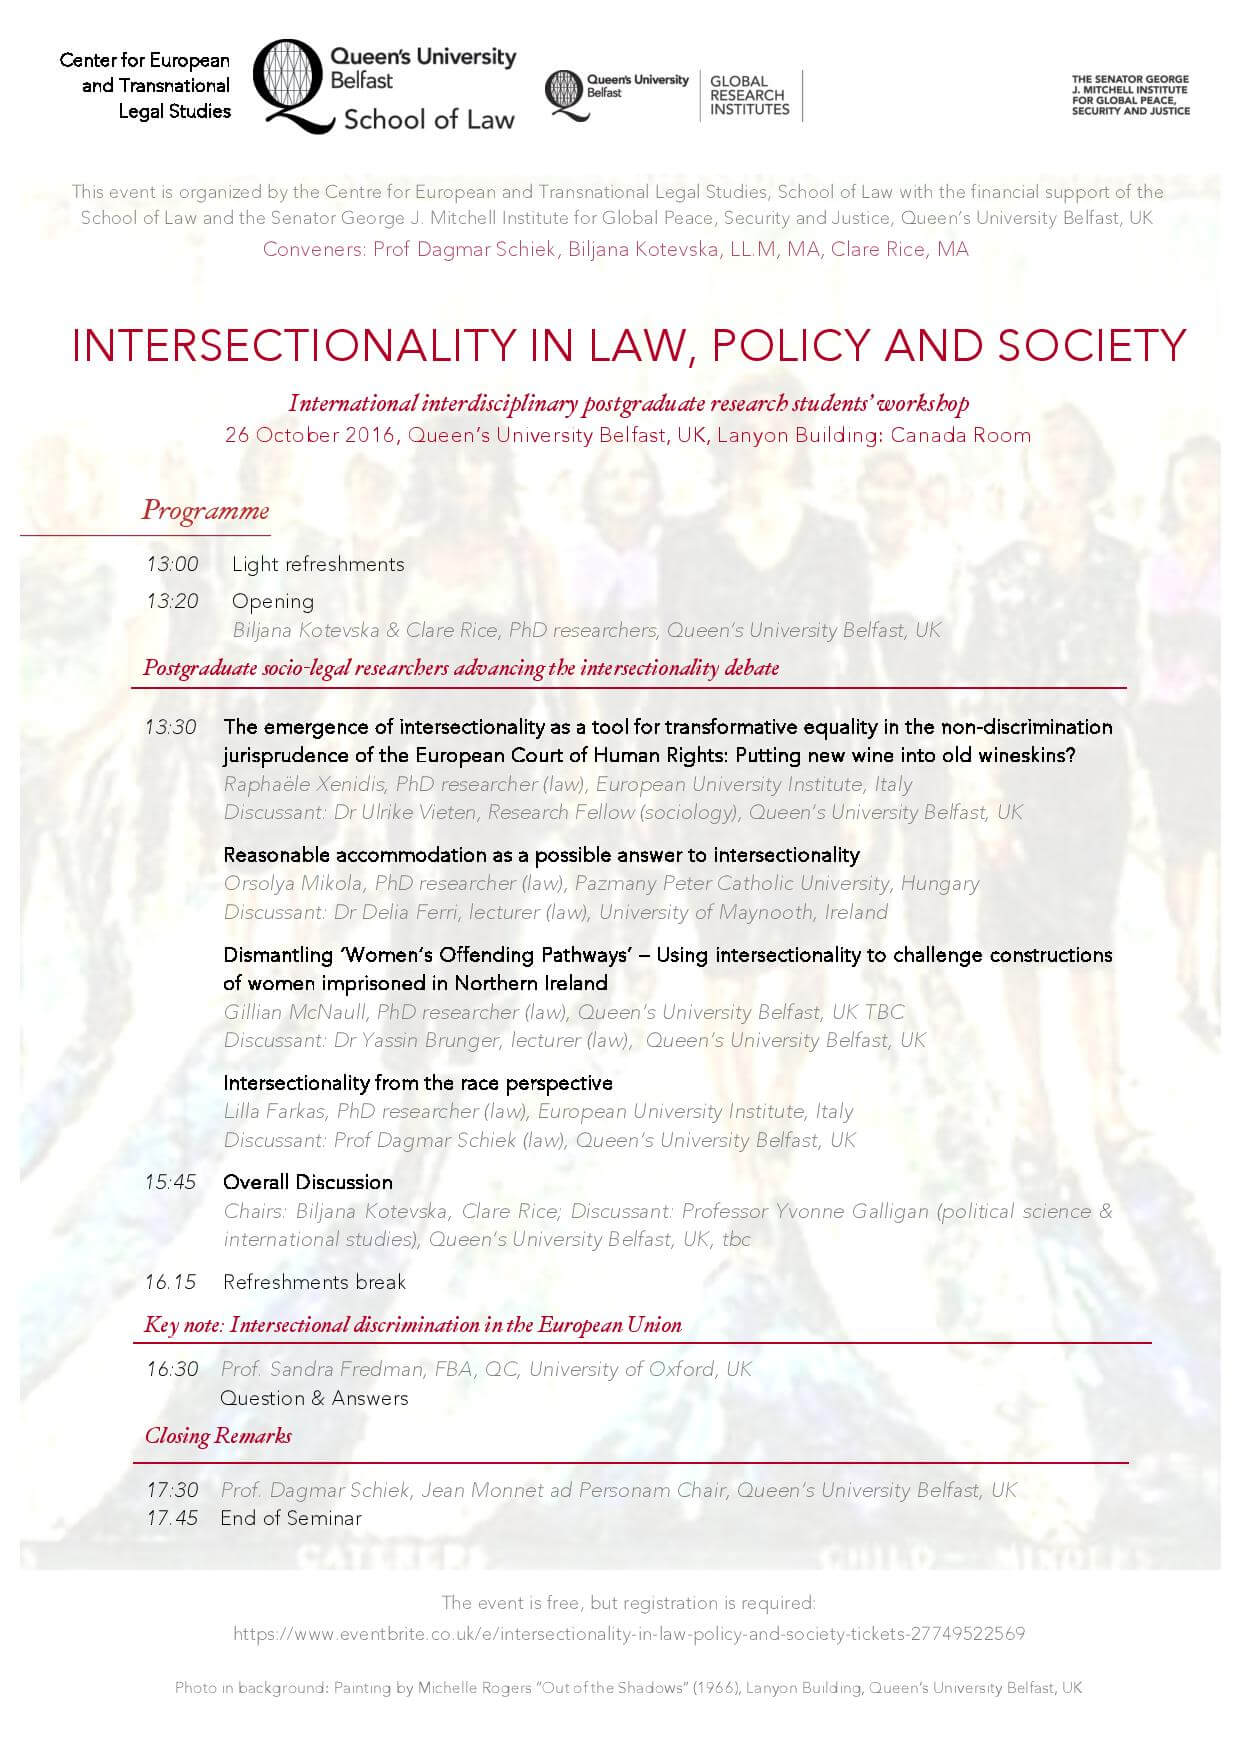 Queen's University Belfast Conference: Intersectionality in Law, Policy and Society